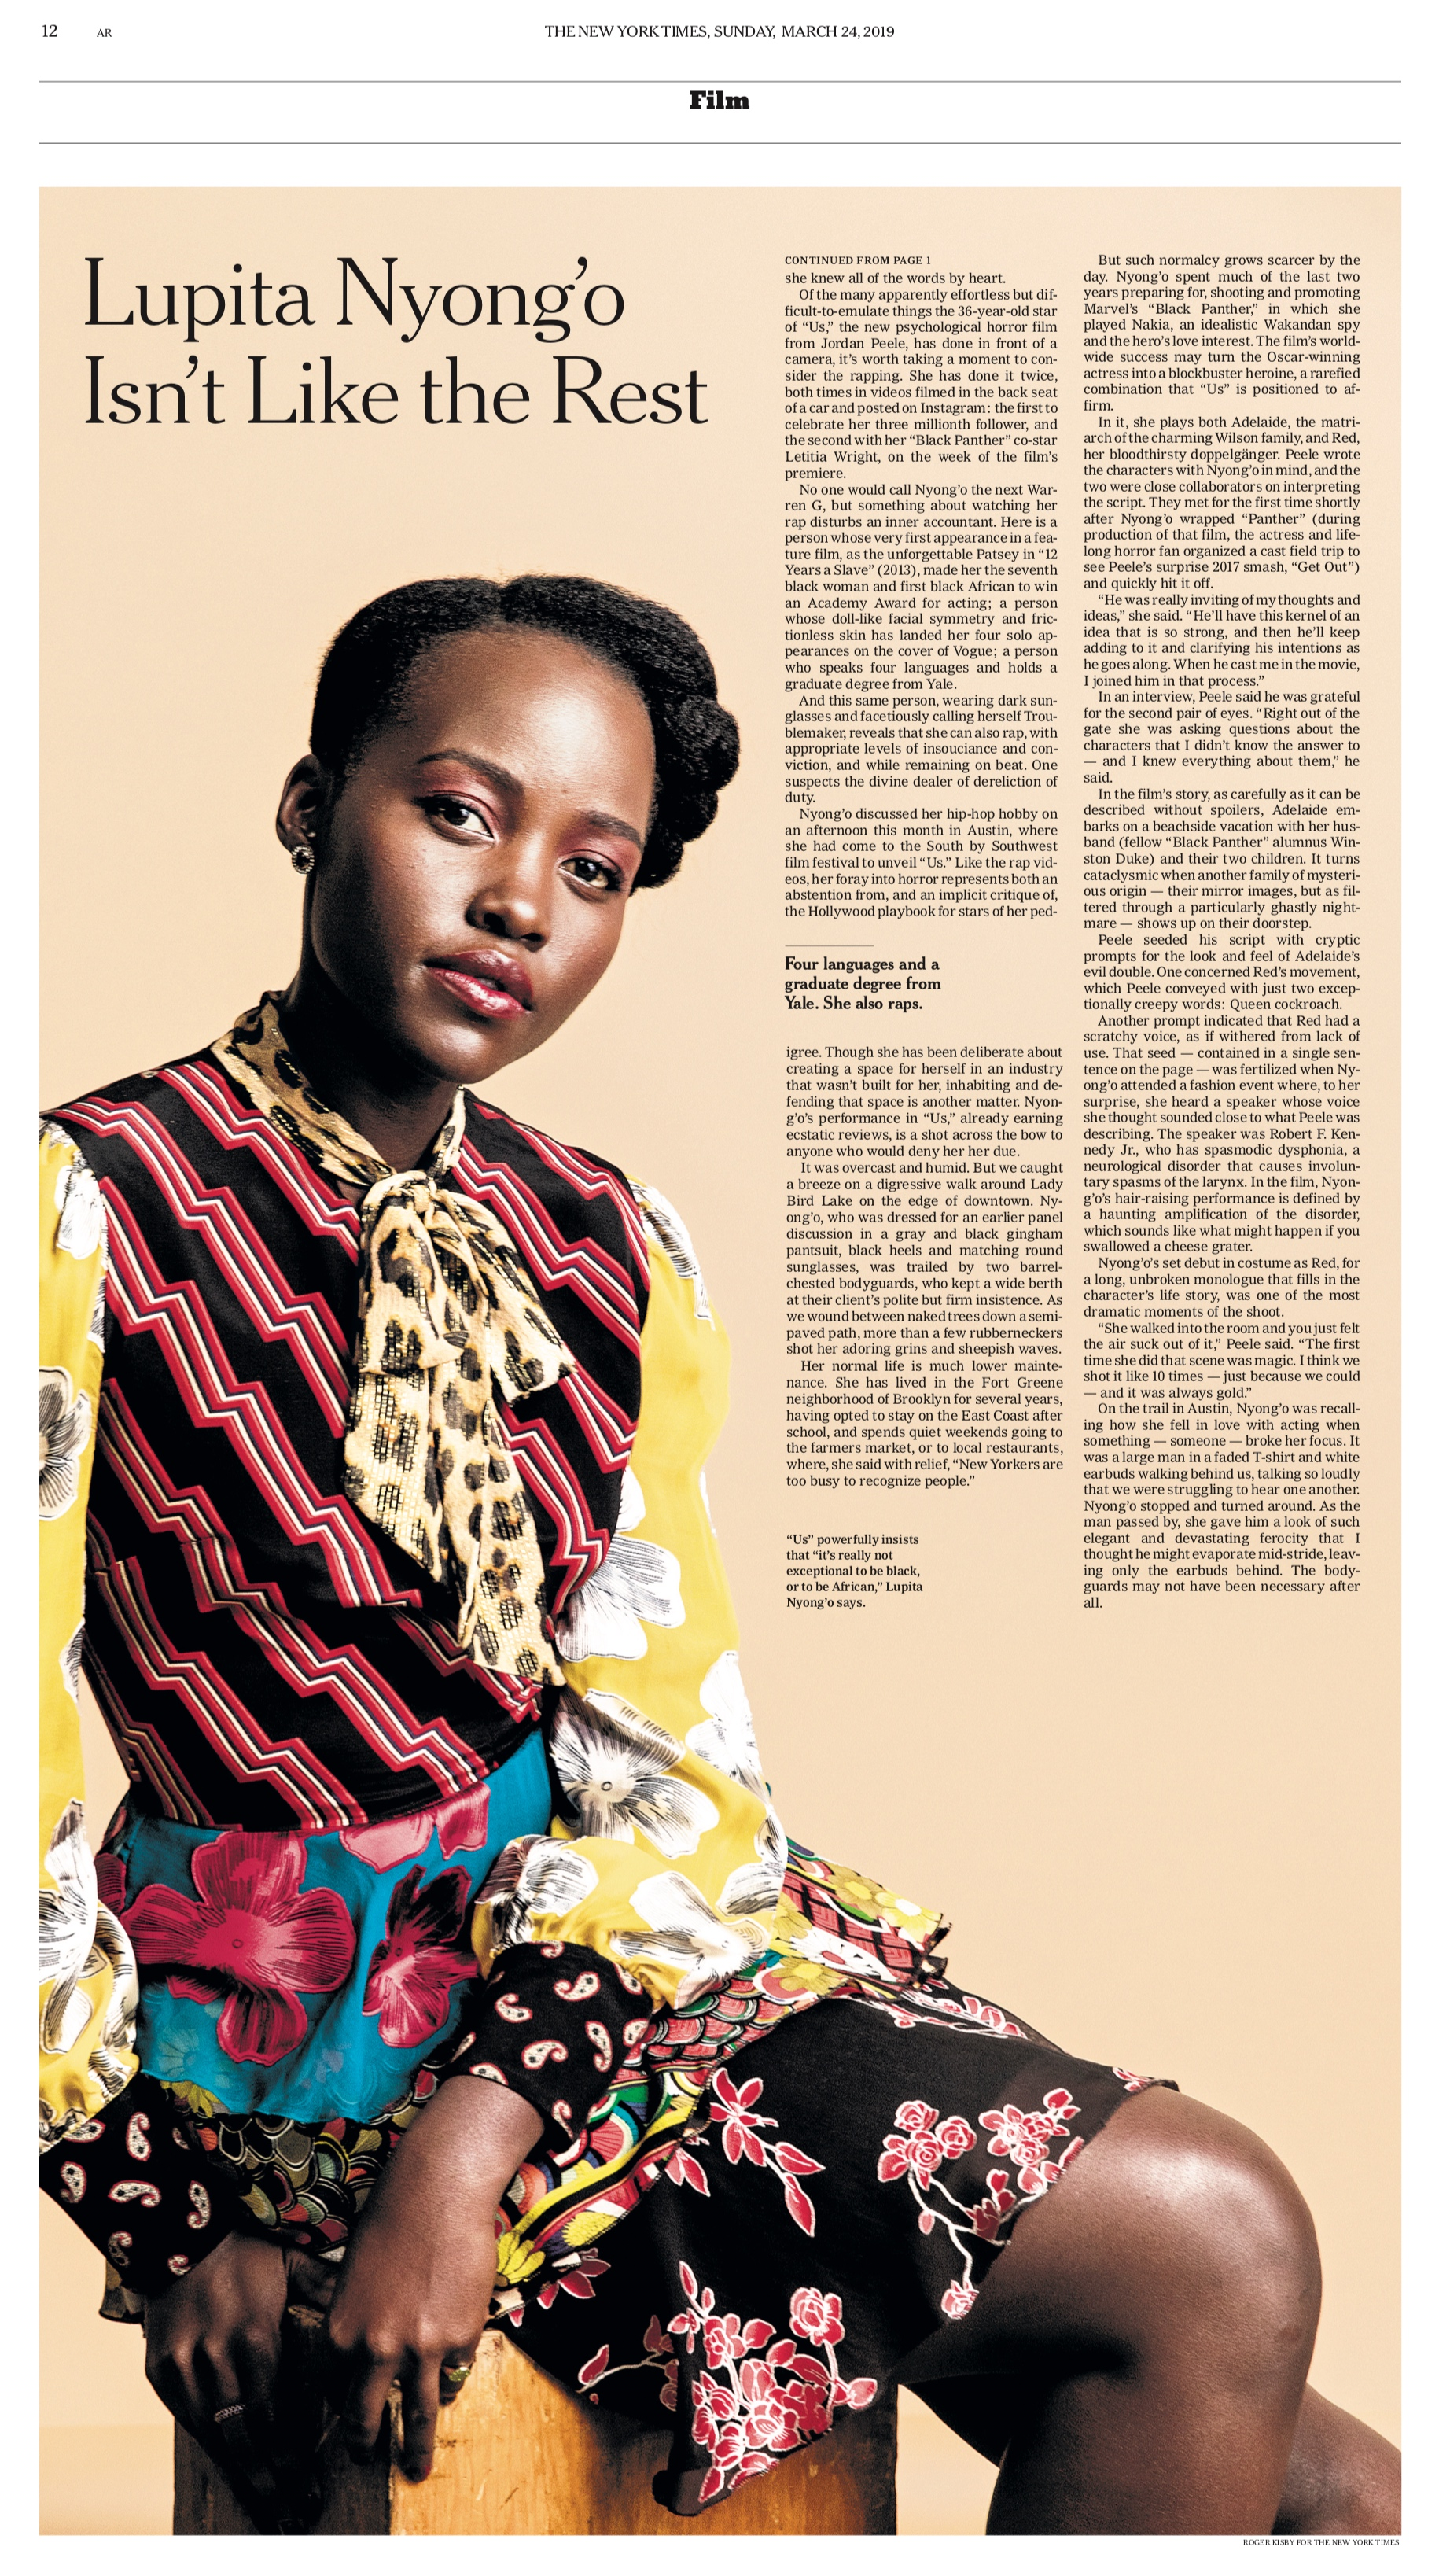 Lupita Nyong'o for  The New York Times